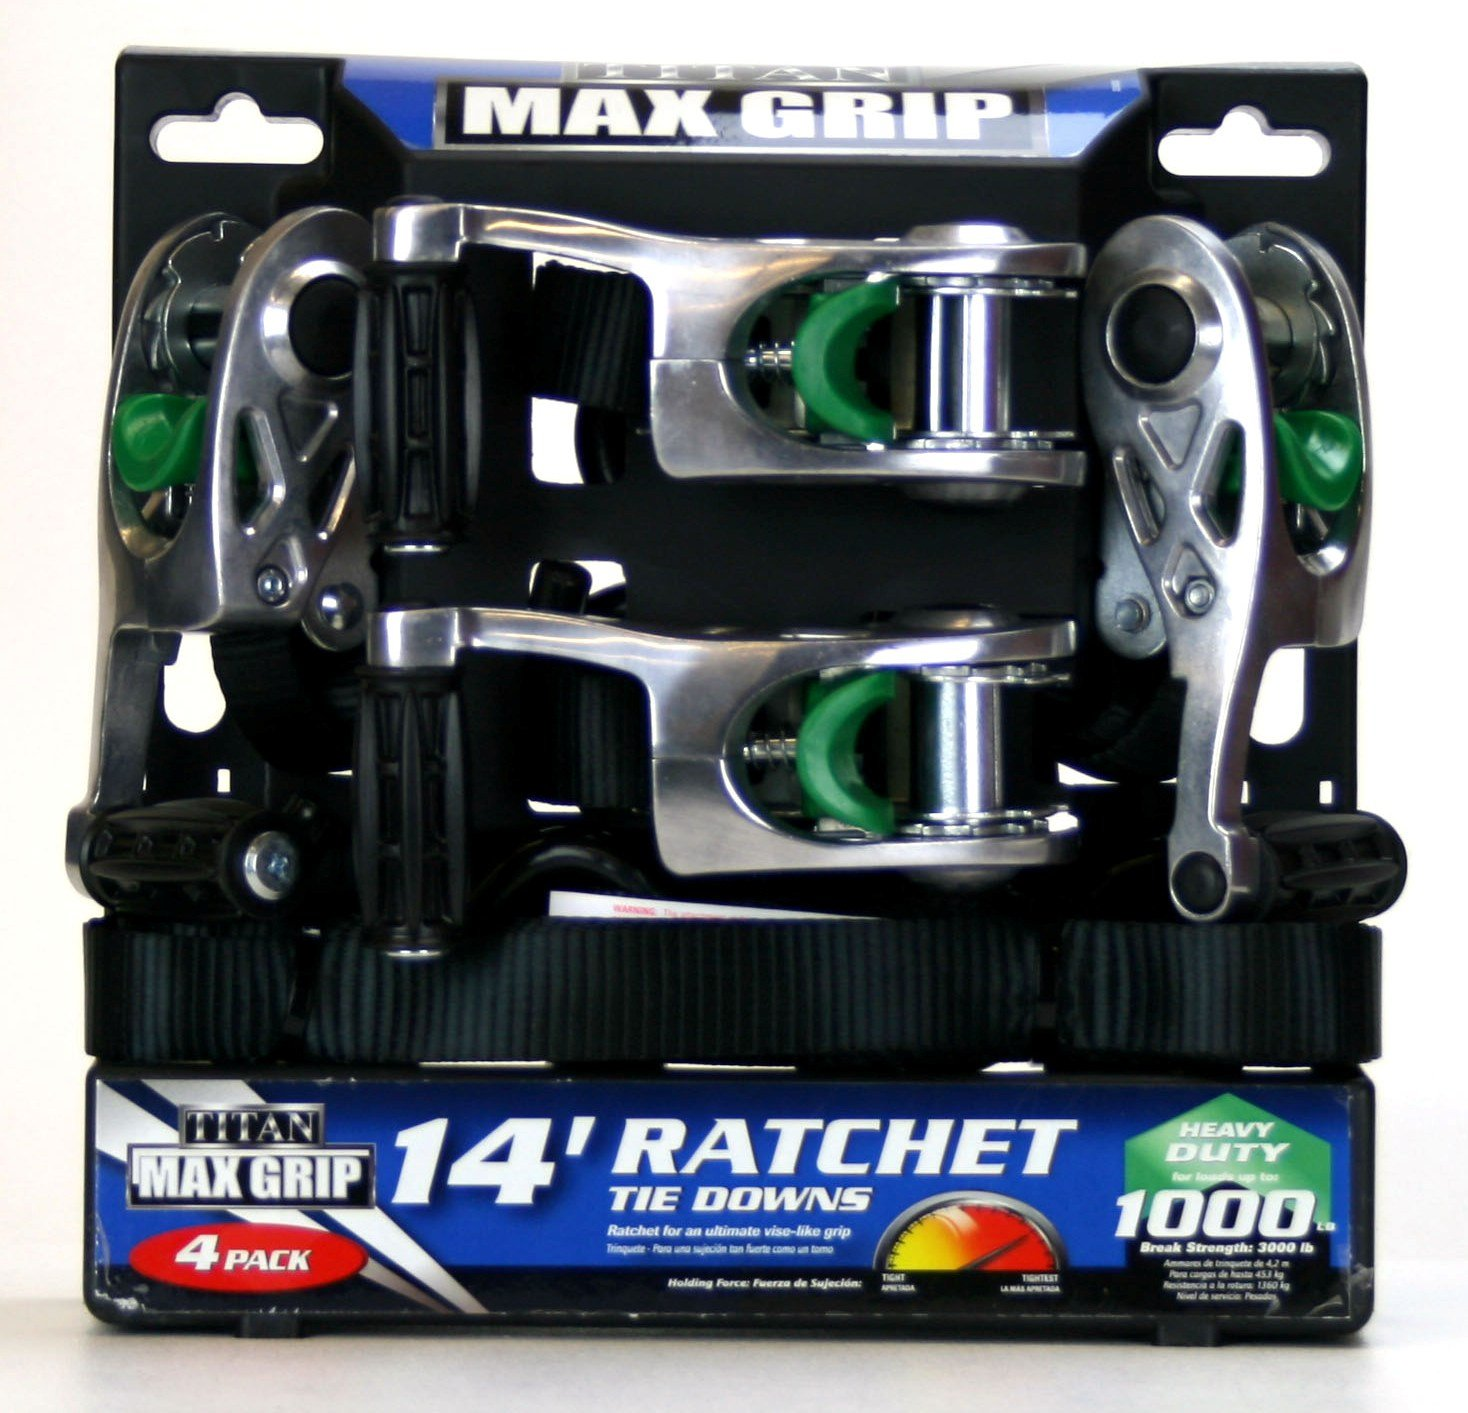 1158500 Highland Titan Max Grip 11585 14 Ratchet Tie Downs 4 Pack Heavy Duty up to 1,000 Lbs